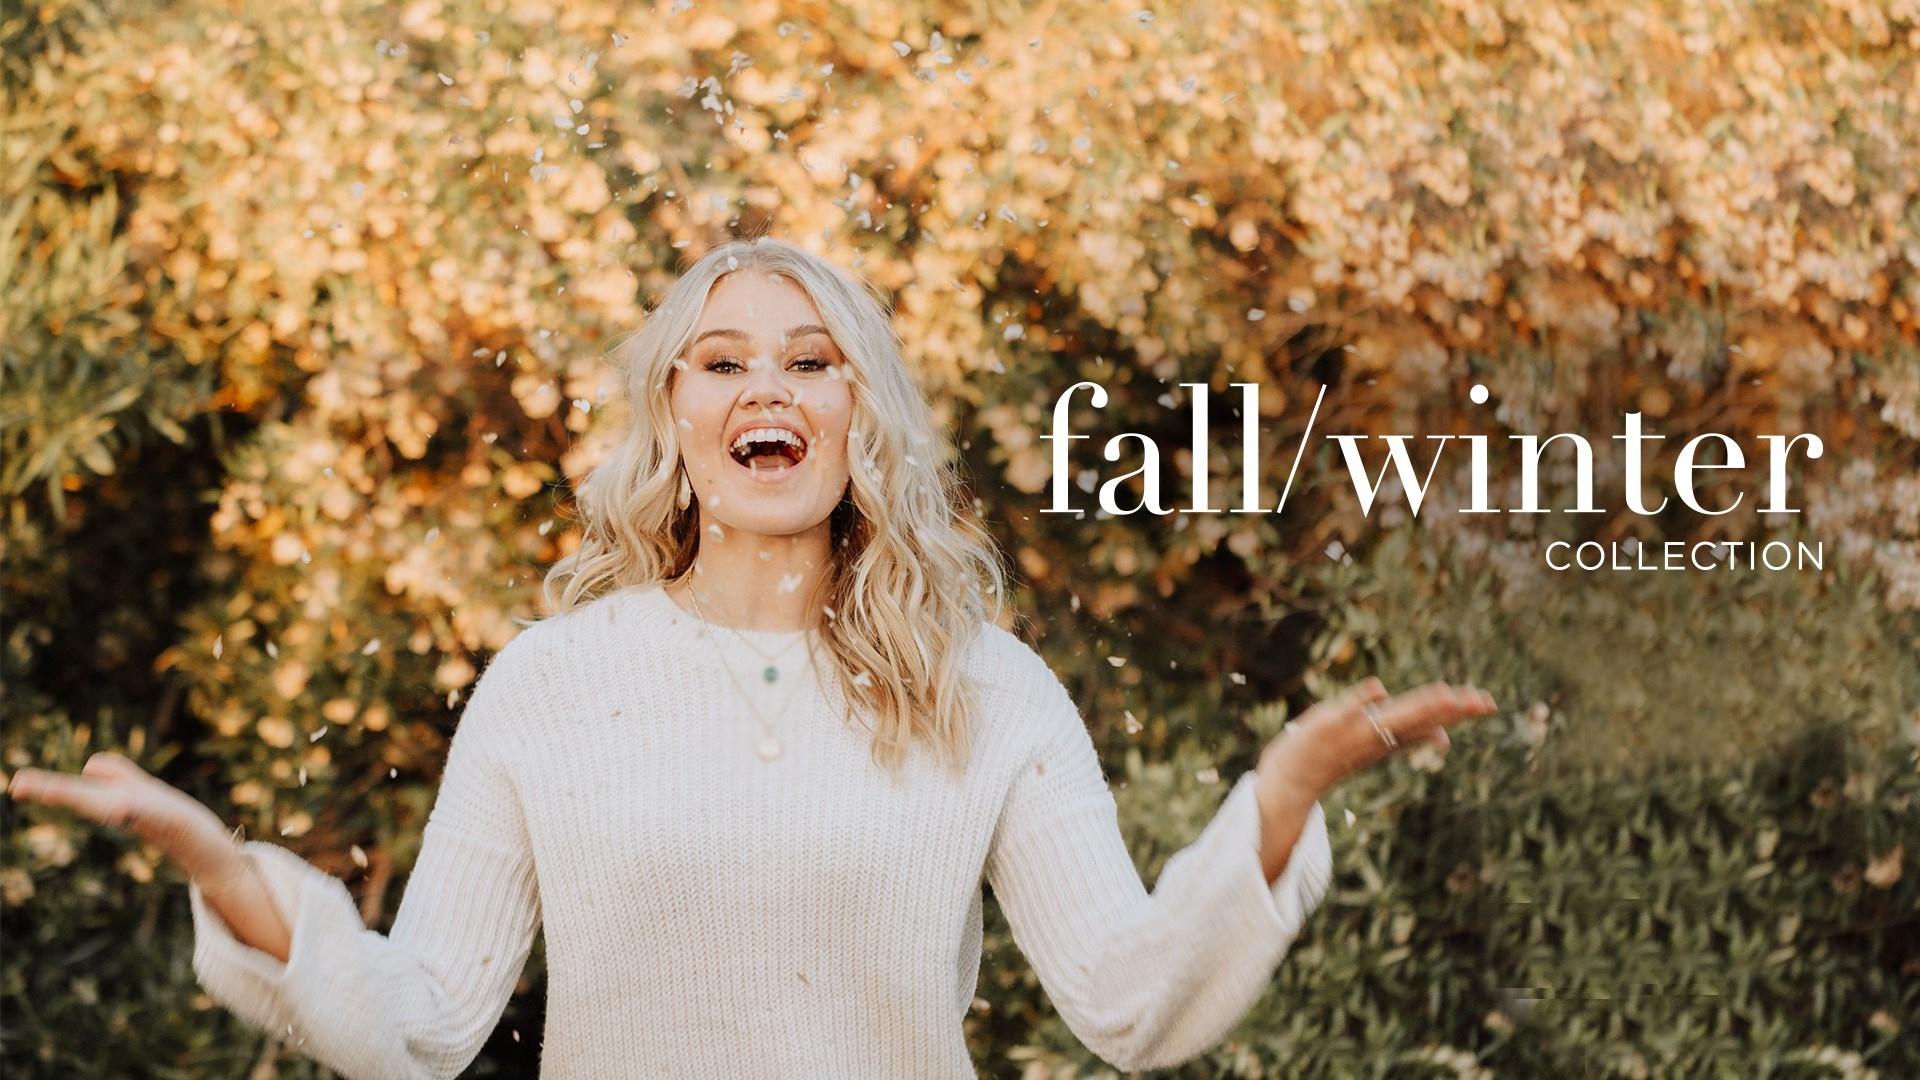 Origami Owl Fall/Winter Collection 2019 Reveal